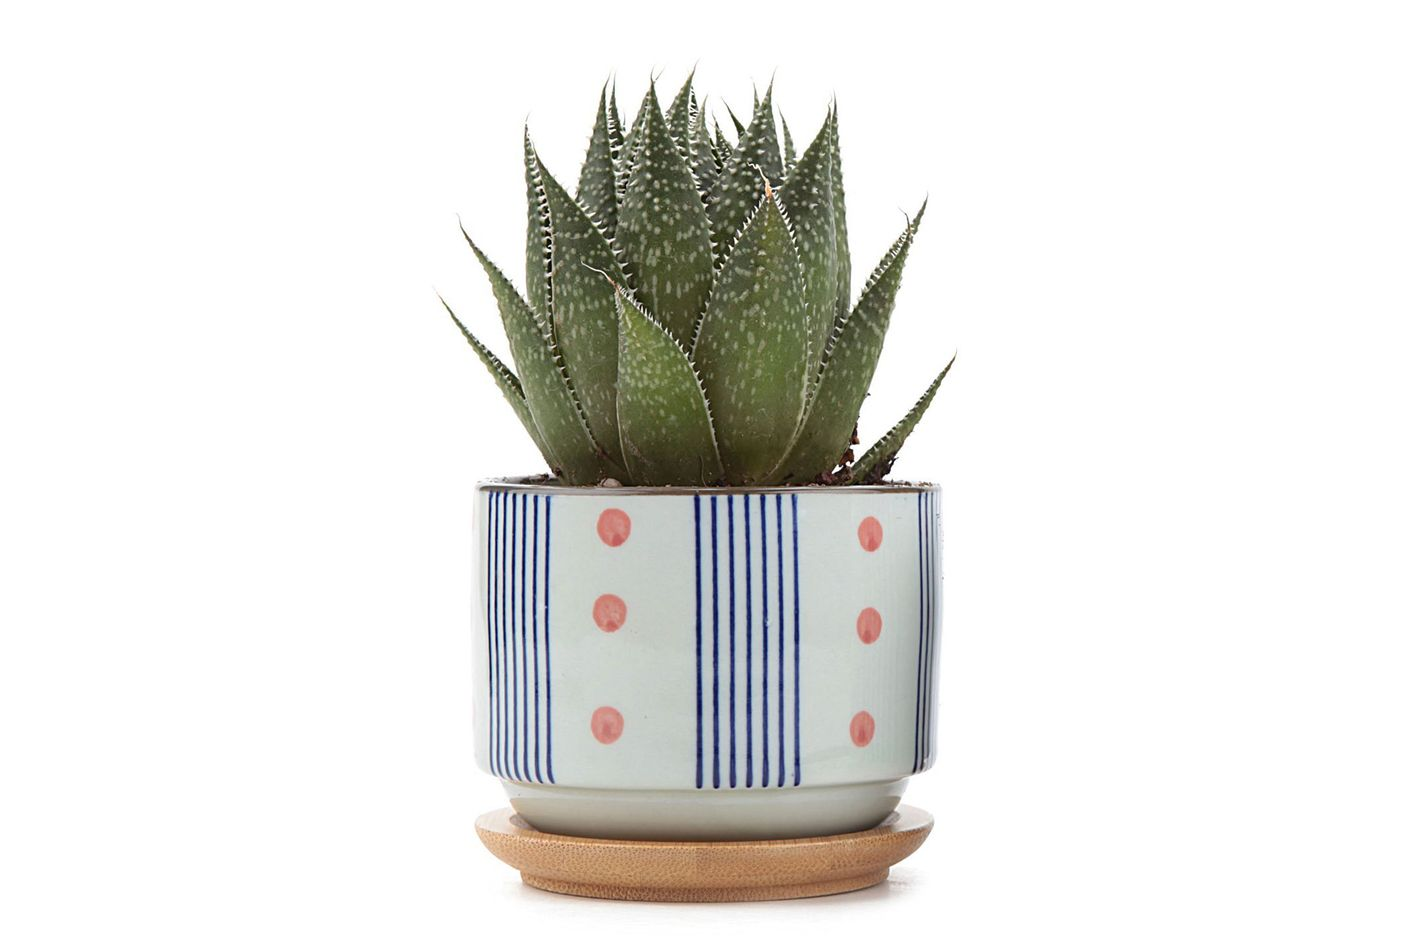 3 Inch Ceramic Plant Pot At